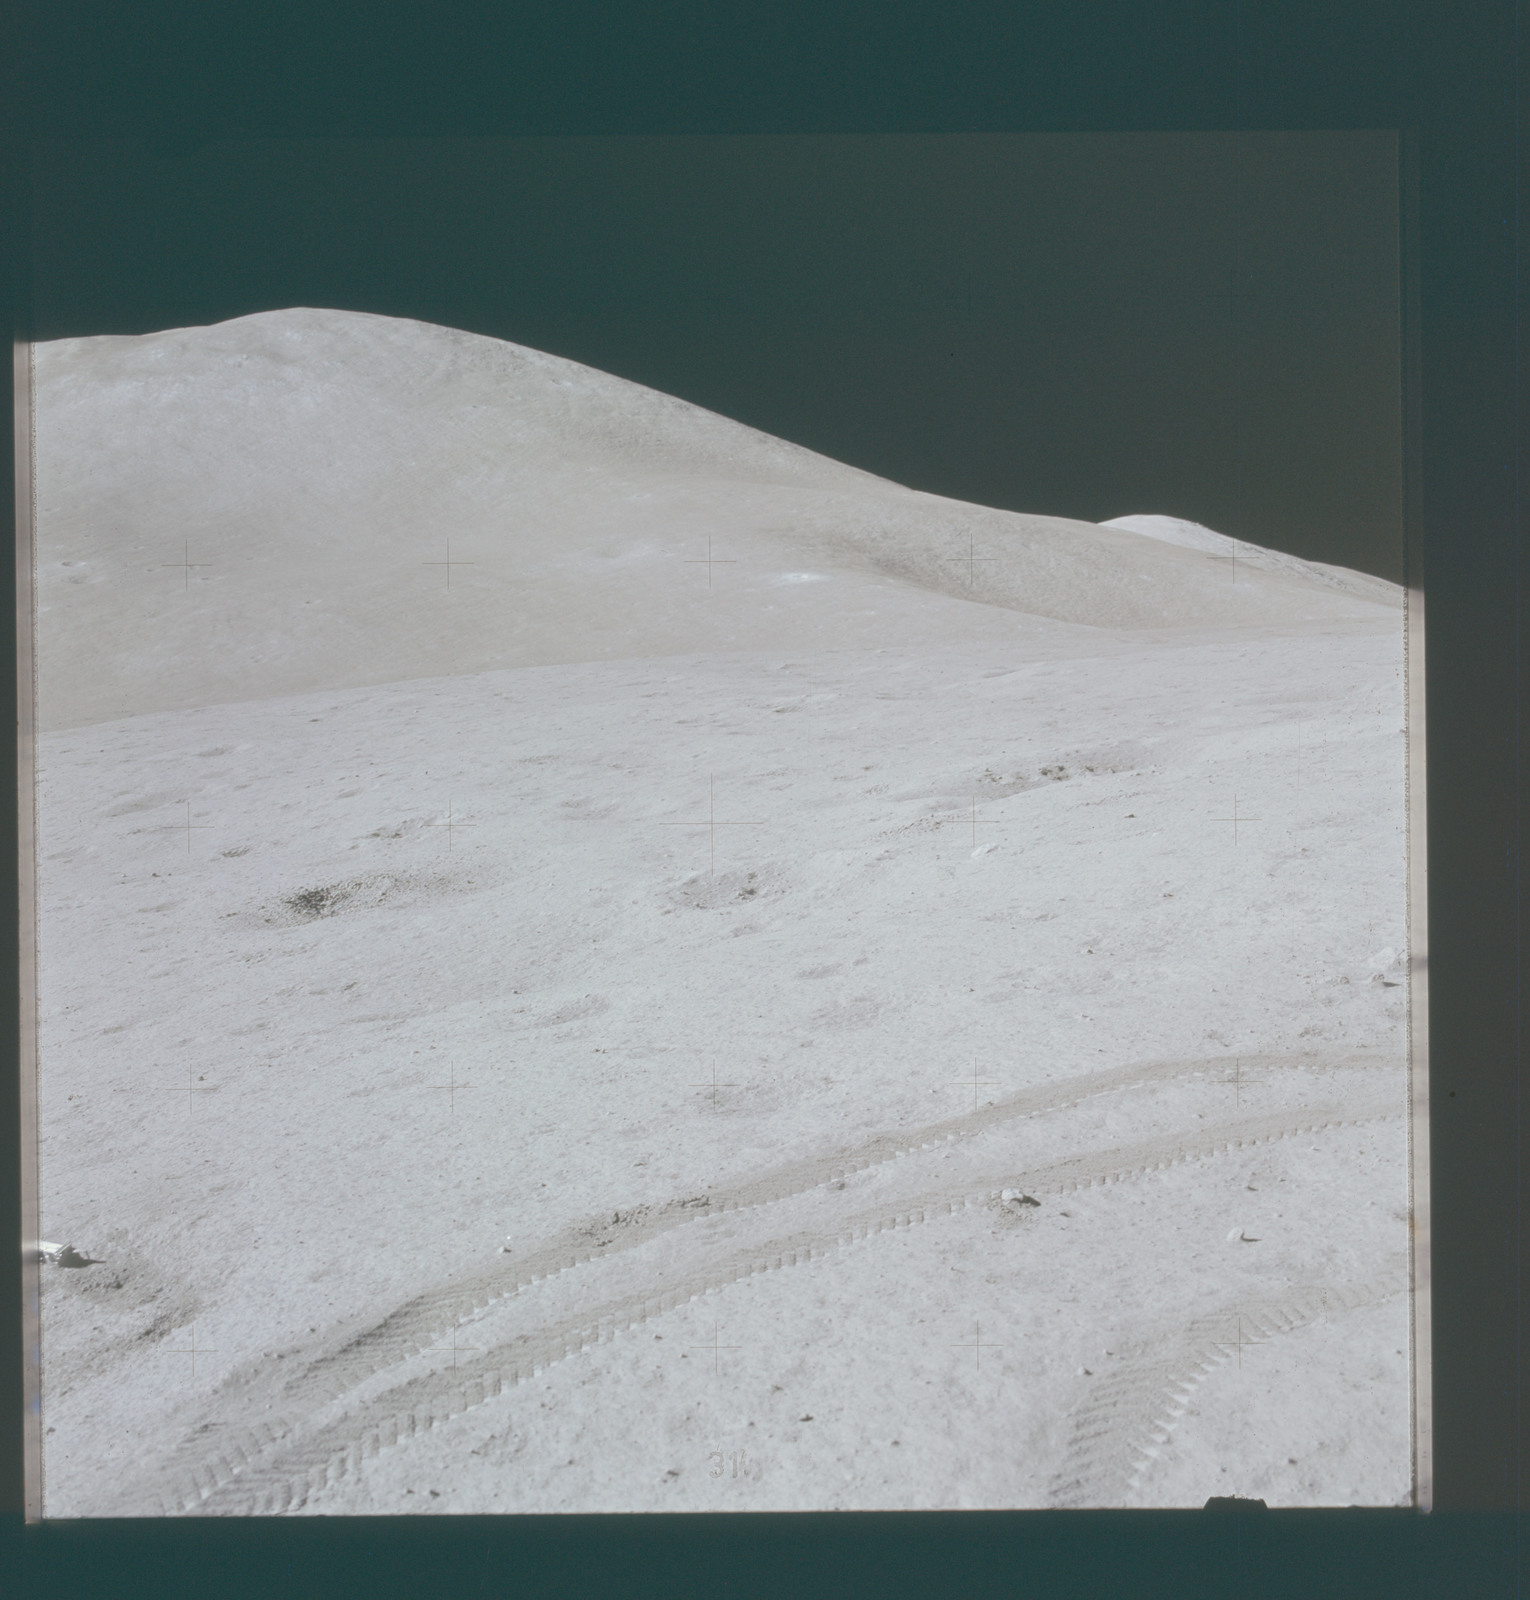 AS15-87-11827 - Apollo 15 - Apollo 15 Mission image - Panoramic southeast view of Lunar Module (LM) and Mt. (Mons) Hadley Delta